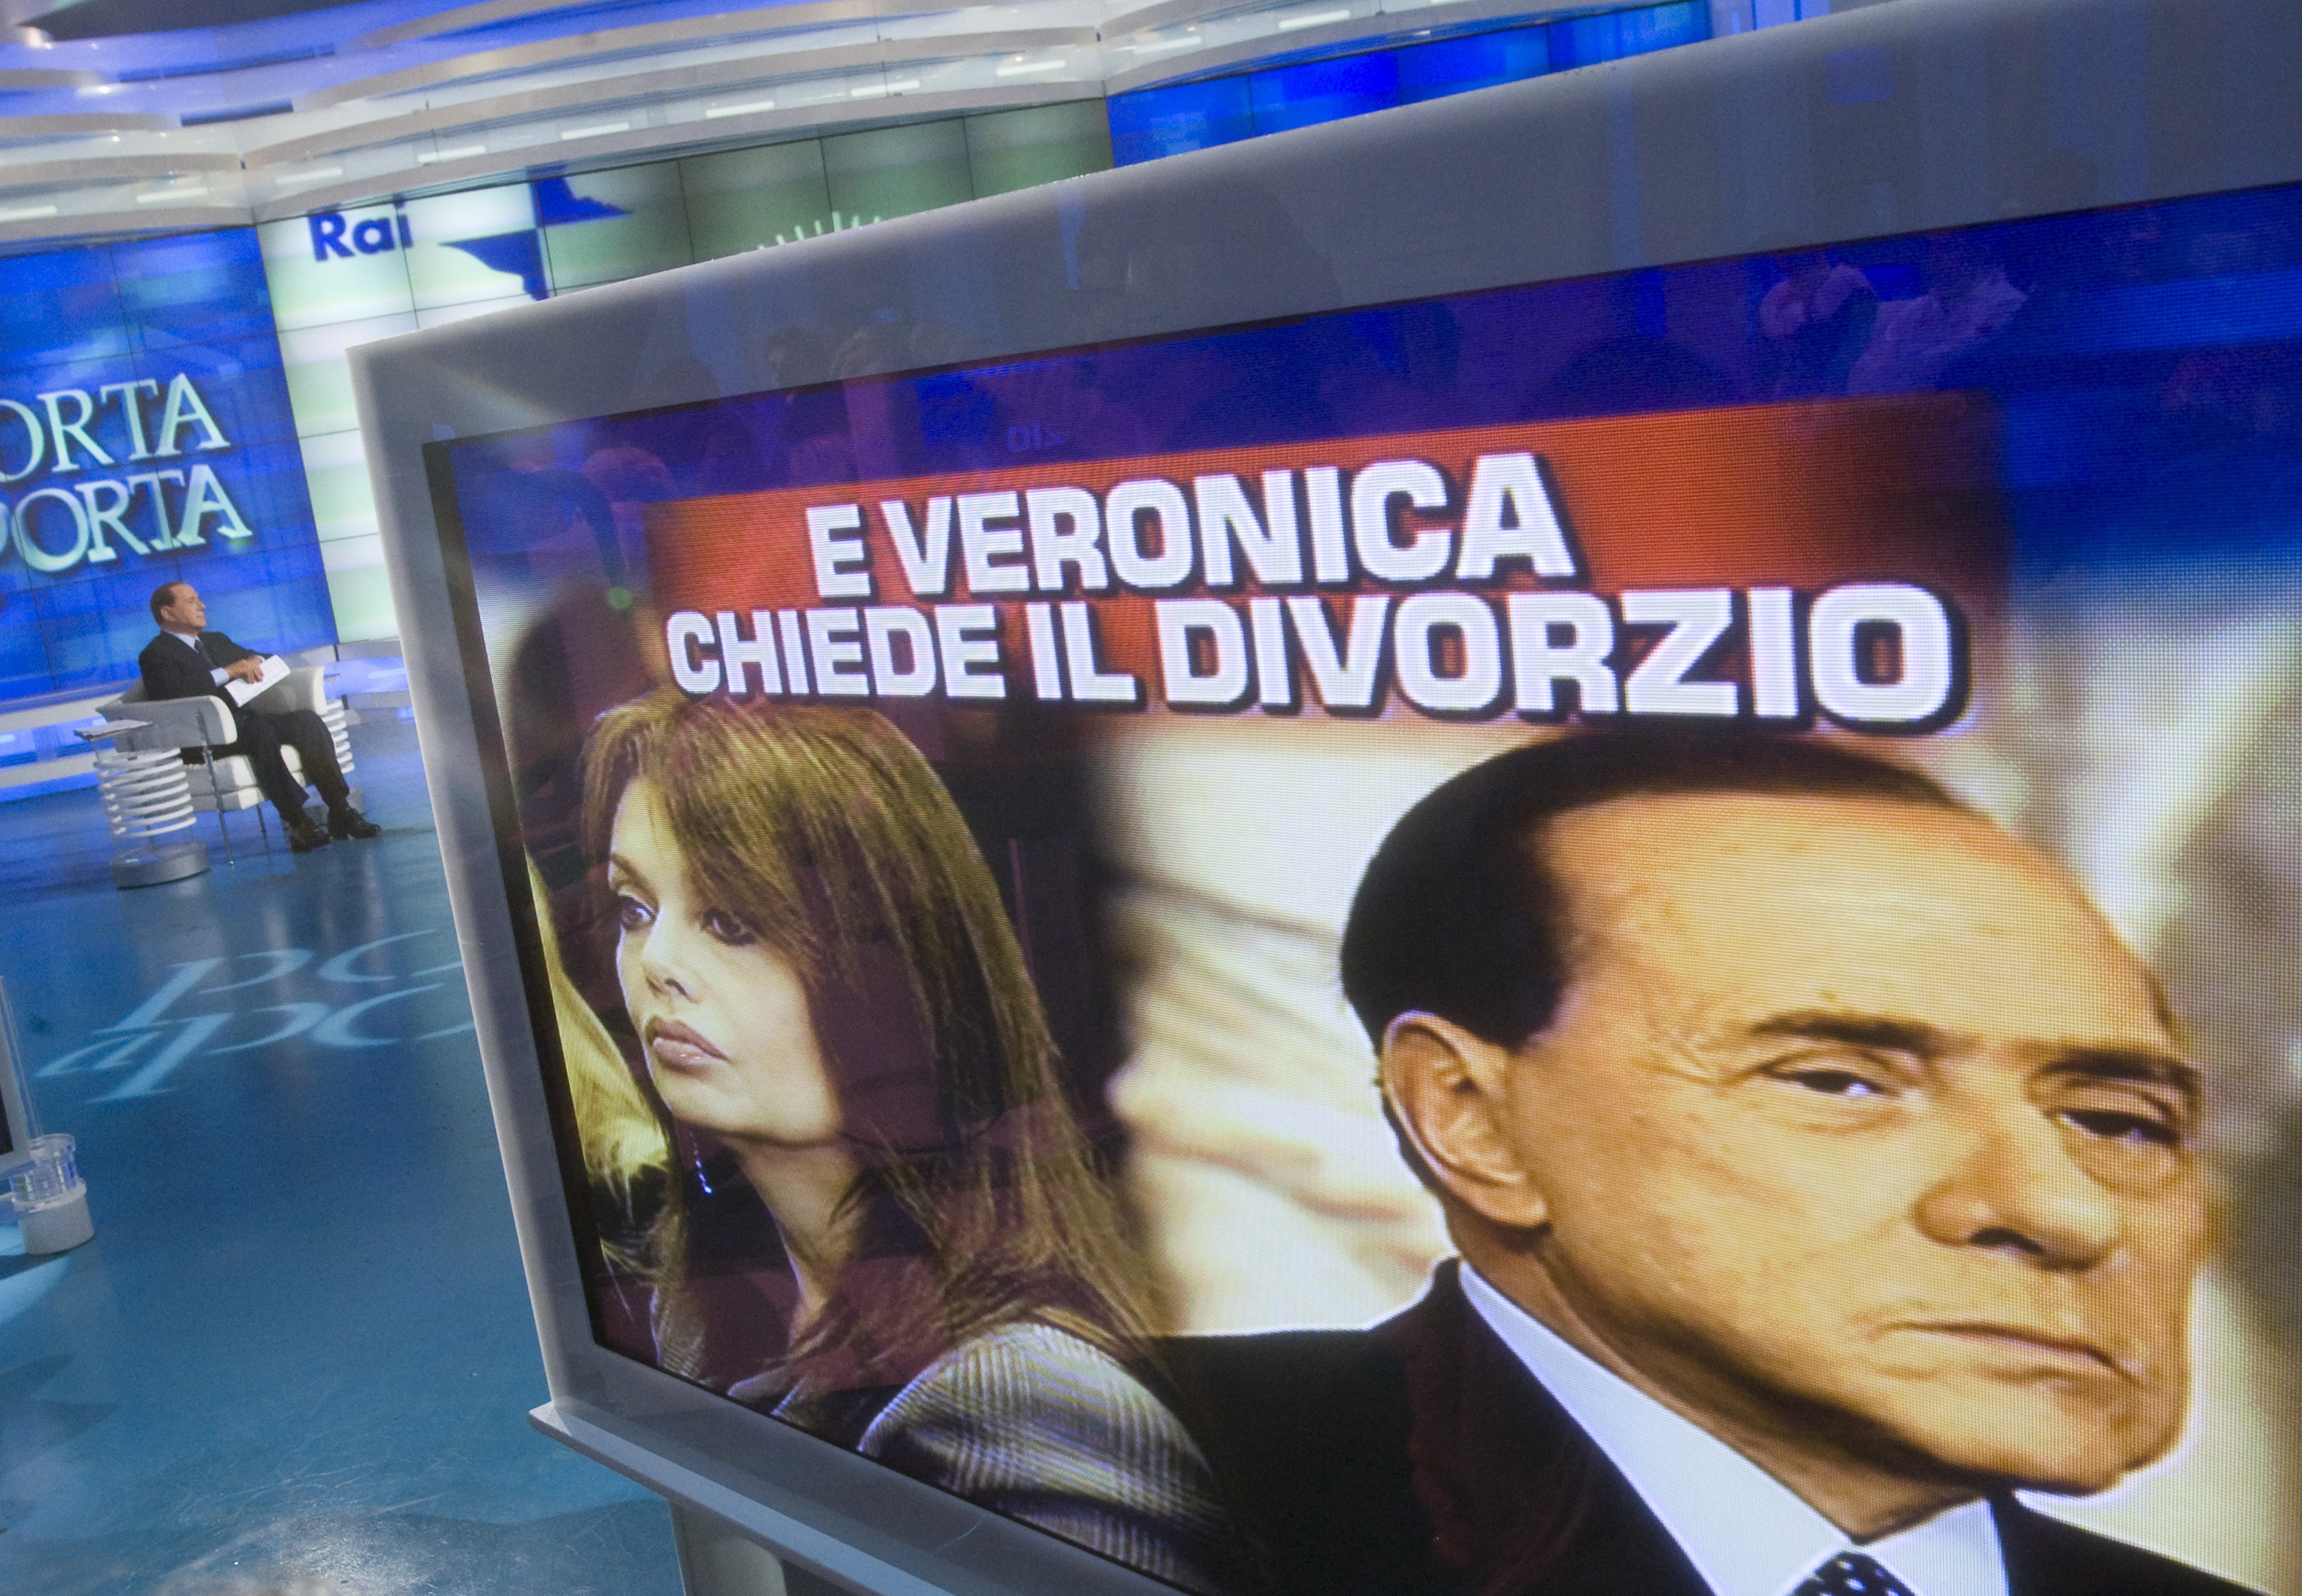 Italy's Prime Minister Silvio Berlusconi (L) sits near a television monitor showing images of him and his wife Veronica Lario during the taping of the television program Porta a Porta (